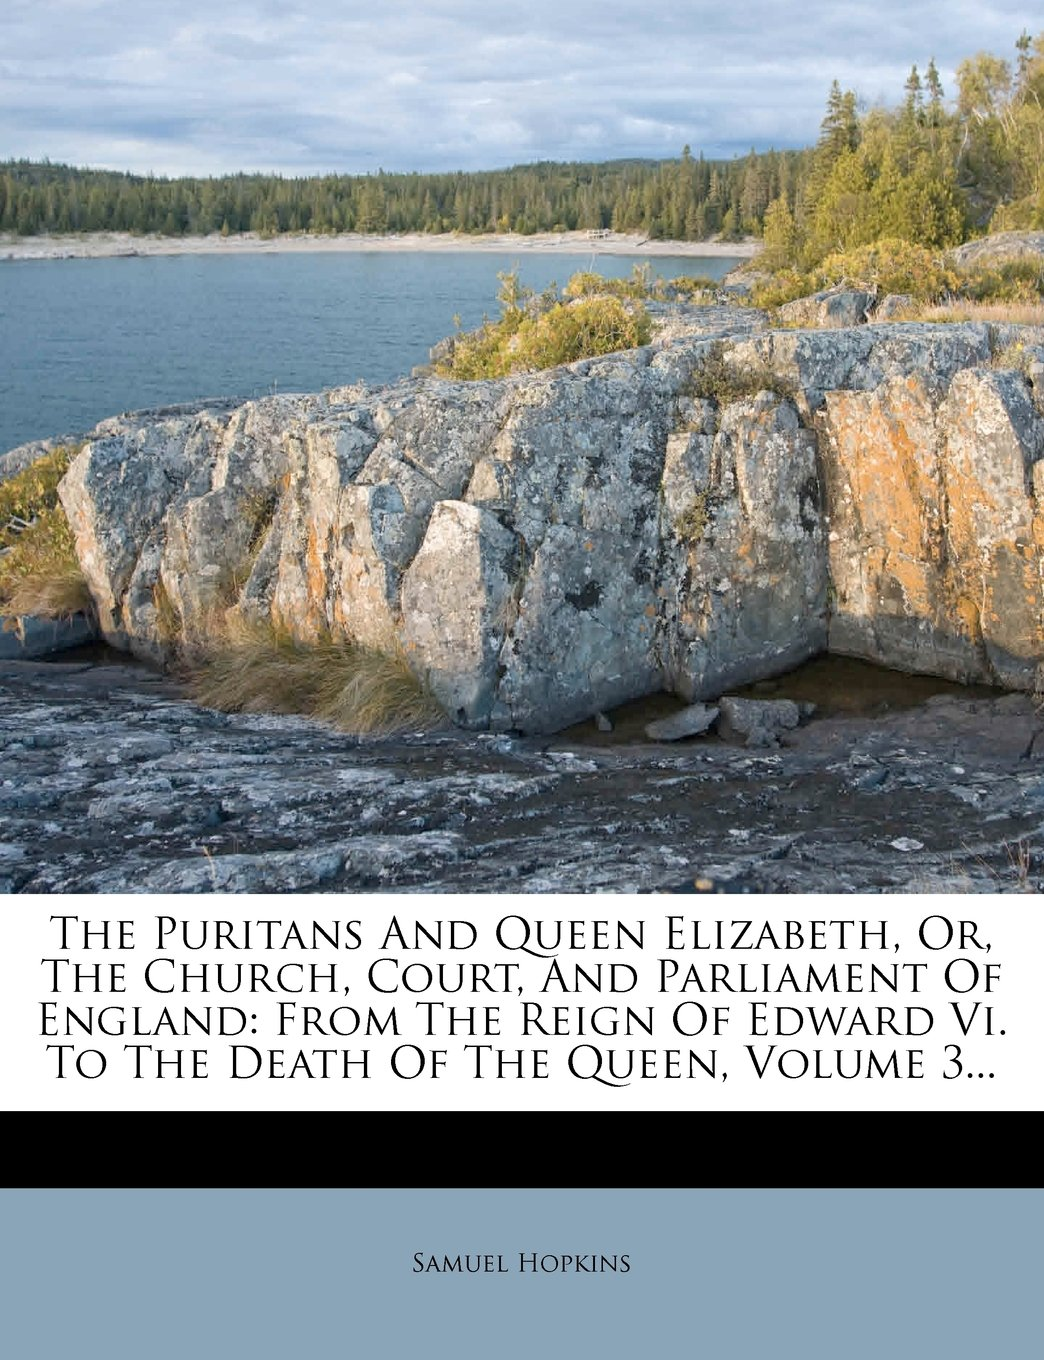 Download The Puritans And Queen Elizabeth, Or, The Church, Court, And Parliament Of England: From The Reign Of Edward Vi. To The Death Of The Queen, Volume 3... pdf epub